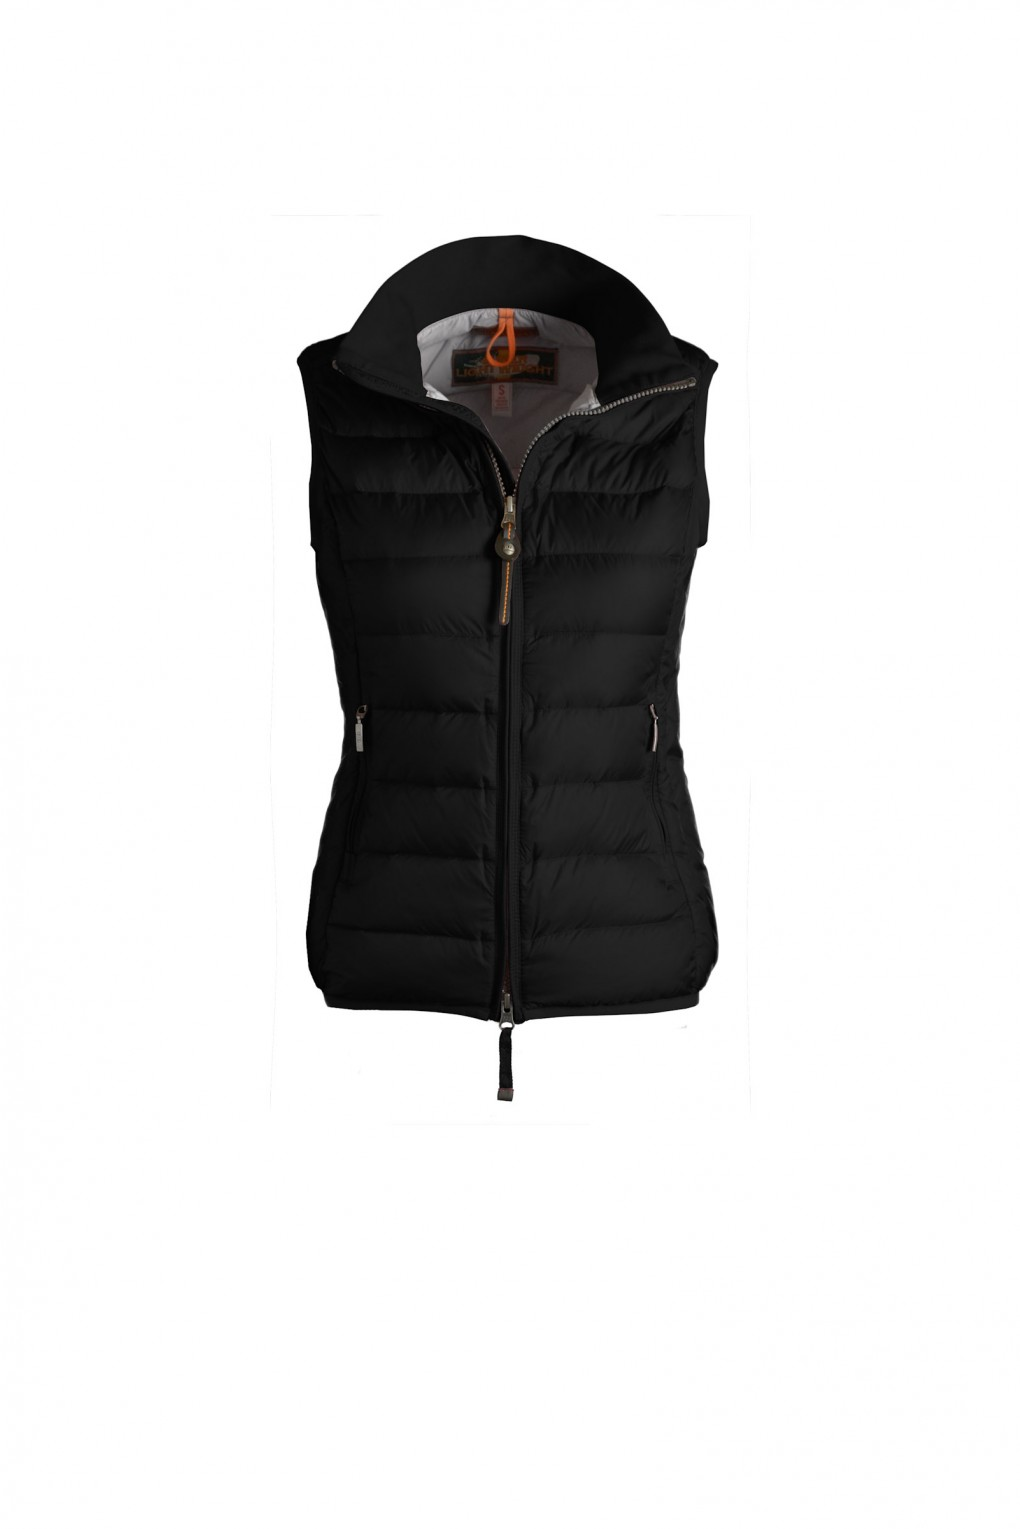 parajumpers DODIE6 woman outerwear Black